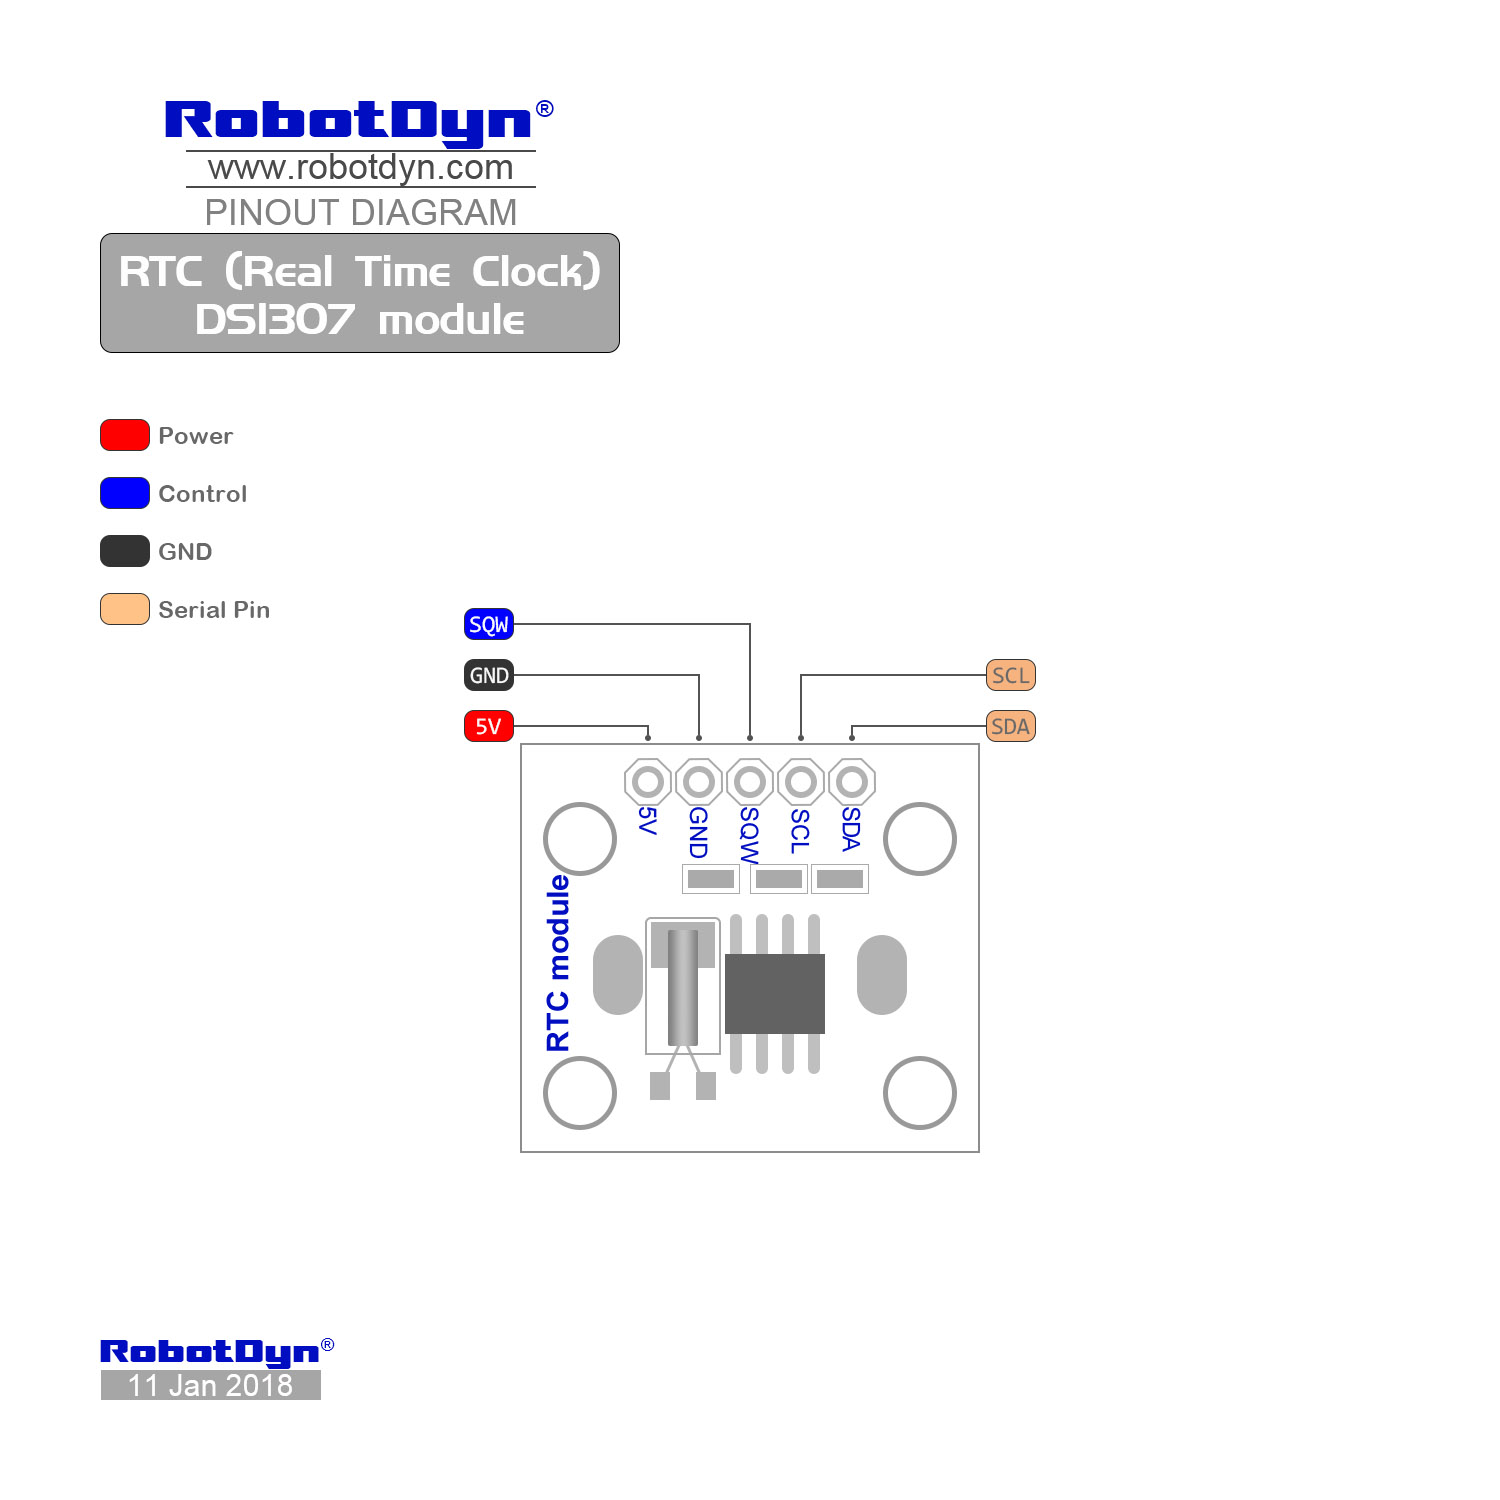 Rtc Real Time Clock Ds1307 Module With Battery Digital Using Pic Microcontroller And Pinout